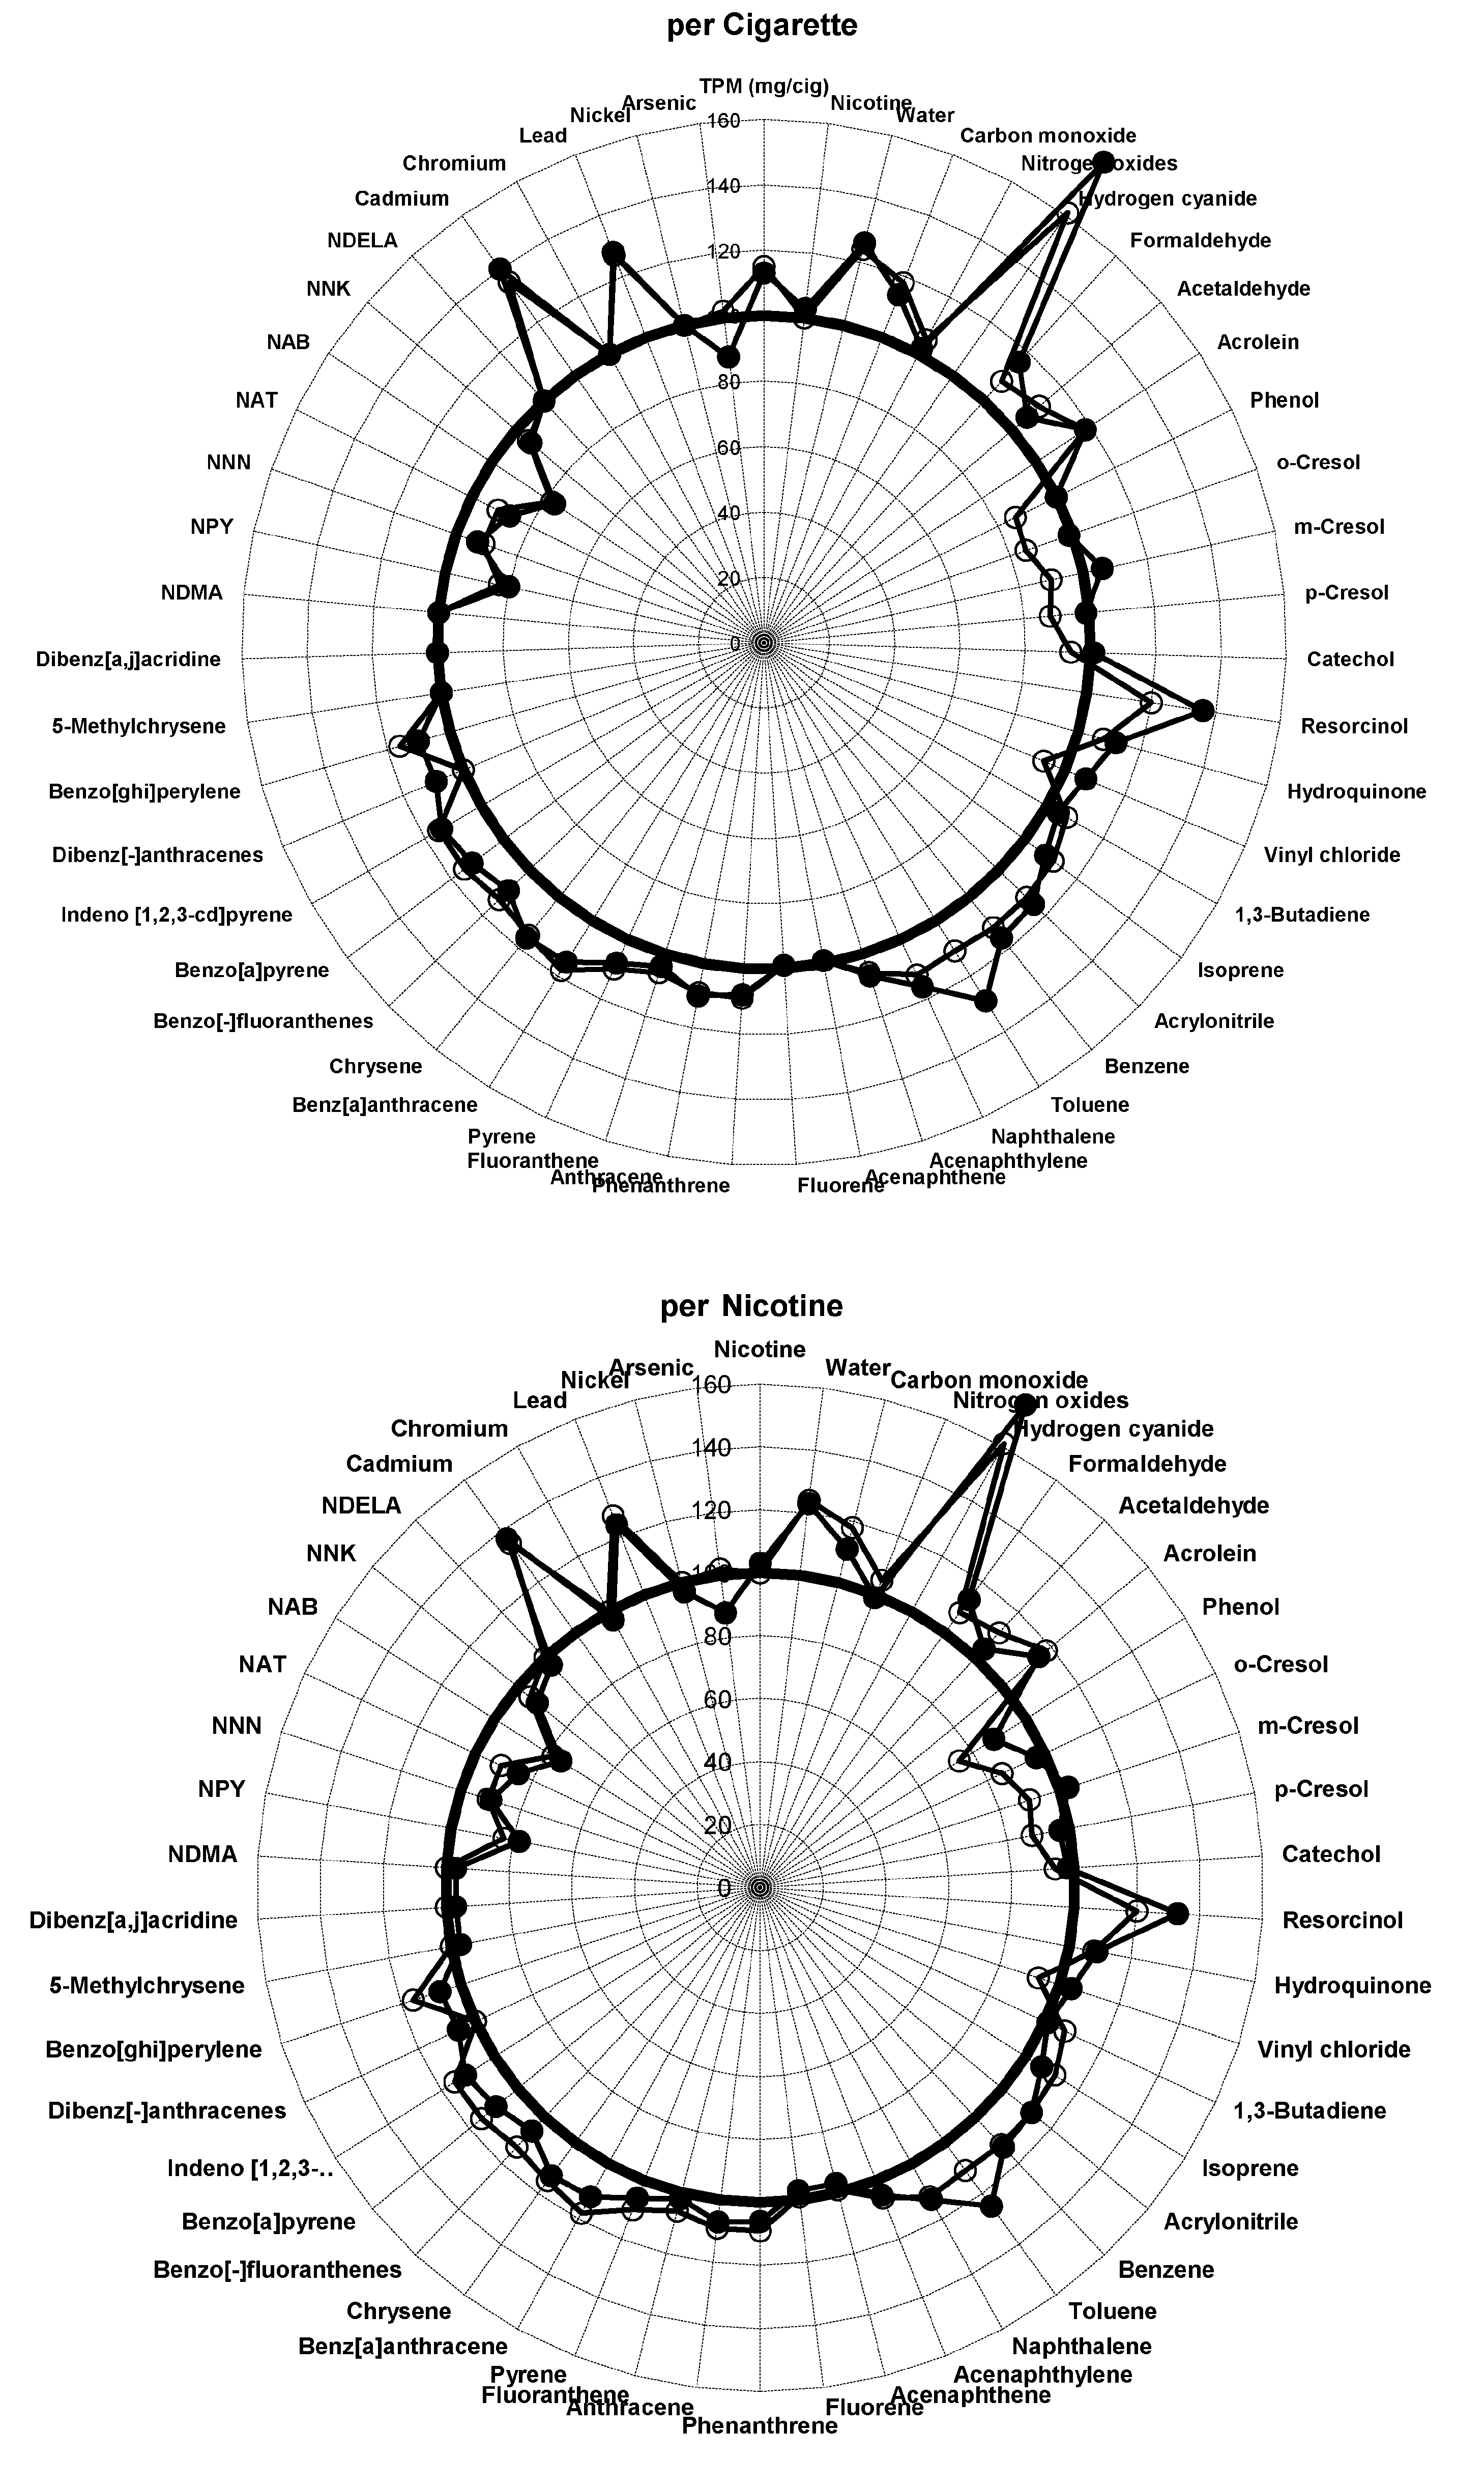 Graphical display of smoke constituents per cigarette and per unit of nicotine compared to control cigarettes for ingredient group 1.